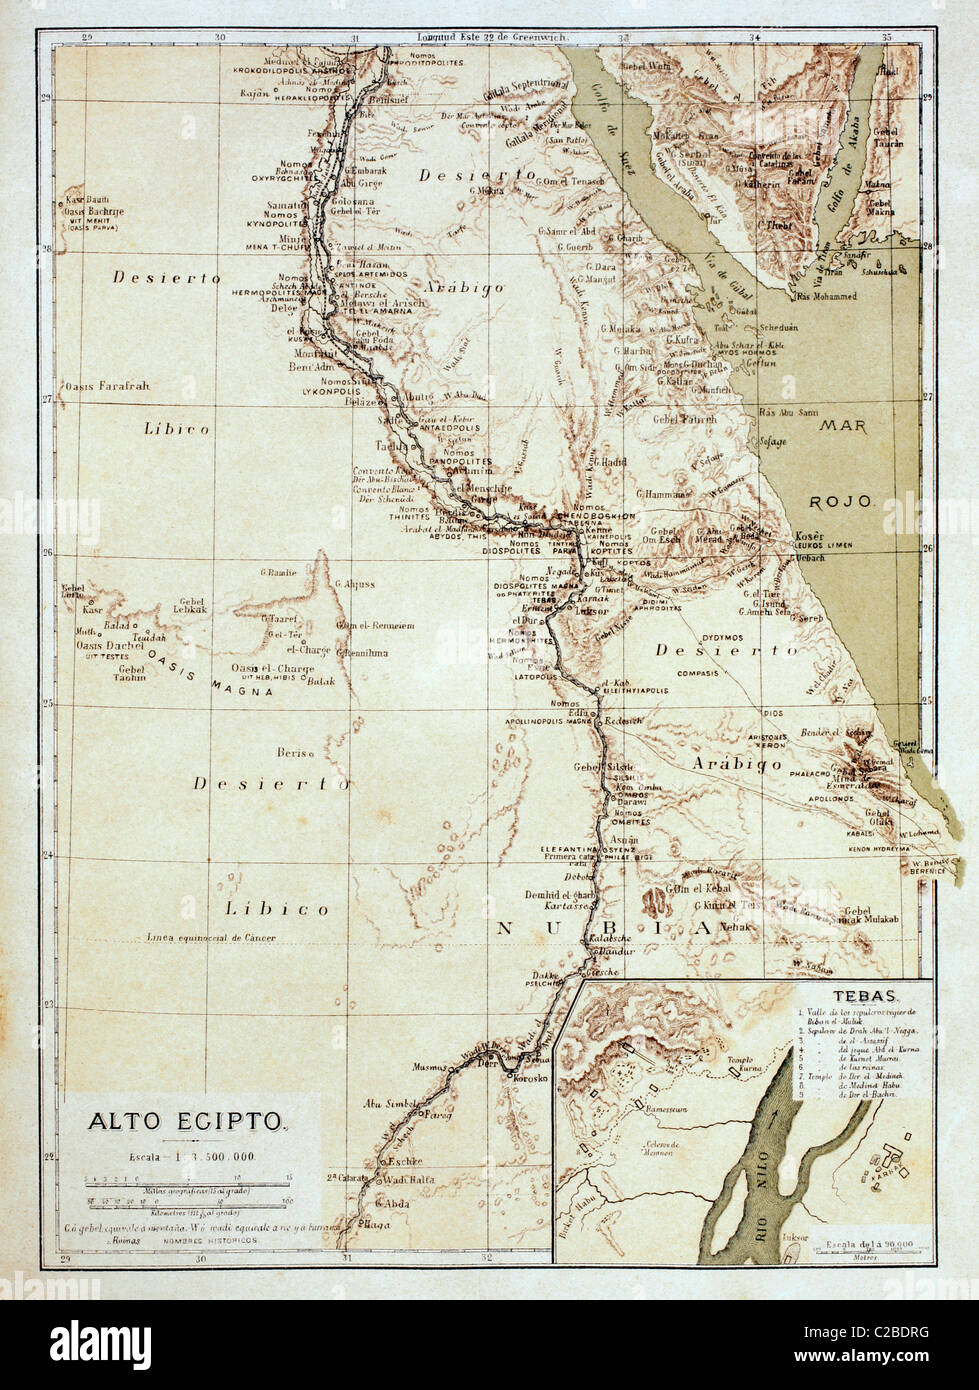 Map of Upper Egypt in the late 19th century. - Stock Image